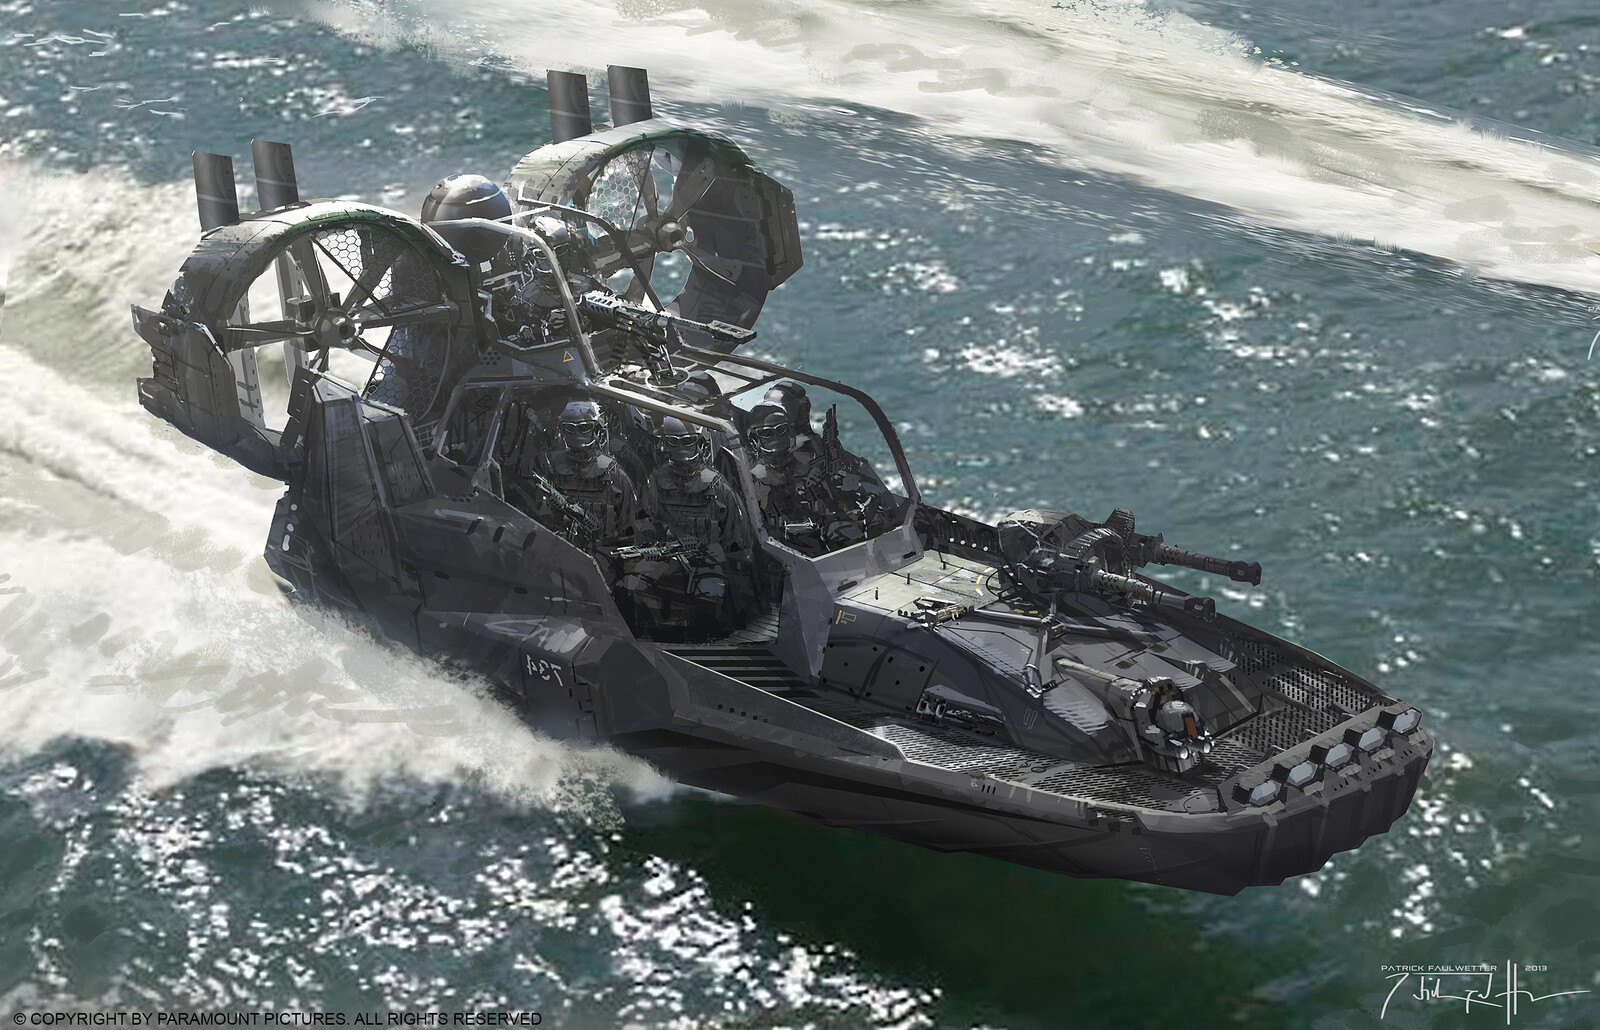 GI JOE Retaliation Propeller Boat Concept